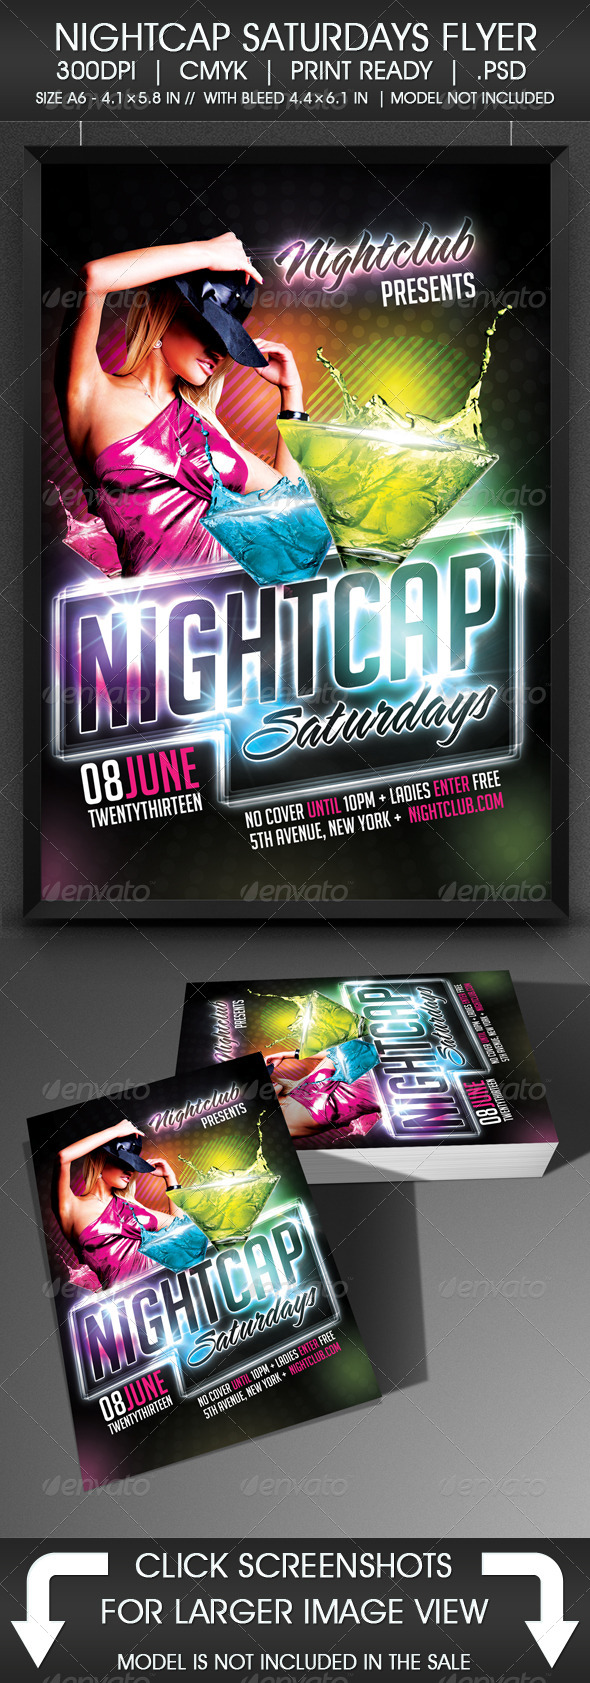 Nightcap Saturdays Flyer - Events Flyers